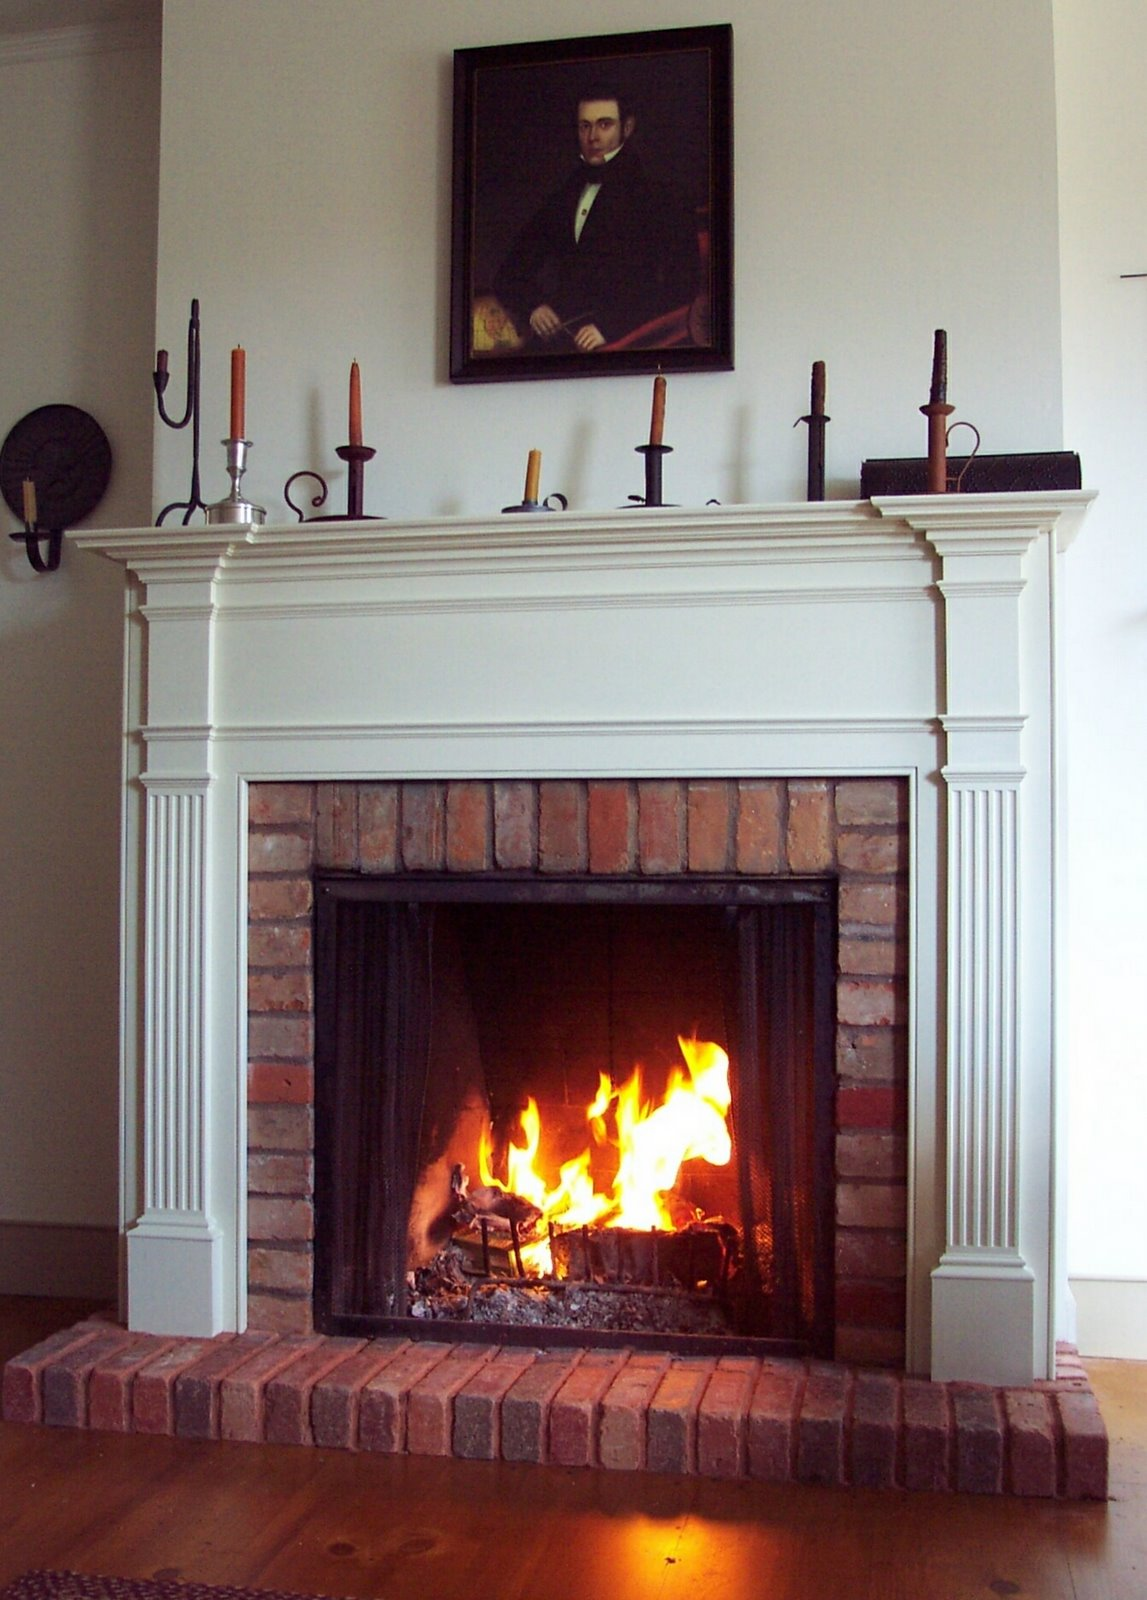 Fireplace mantel fine homebuilding for Rumford fireplace insert